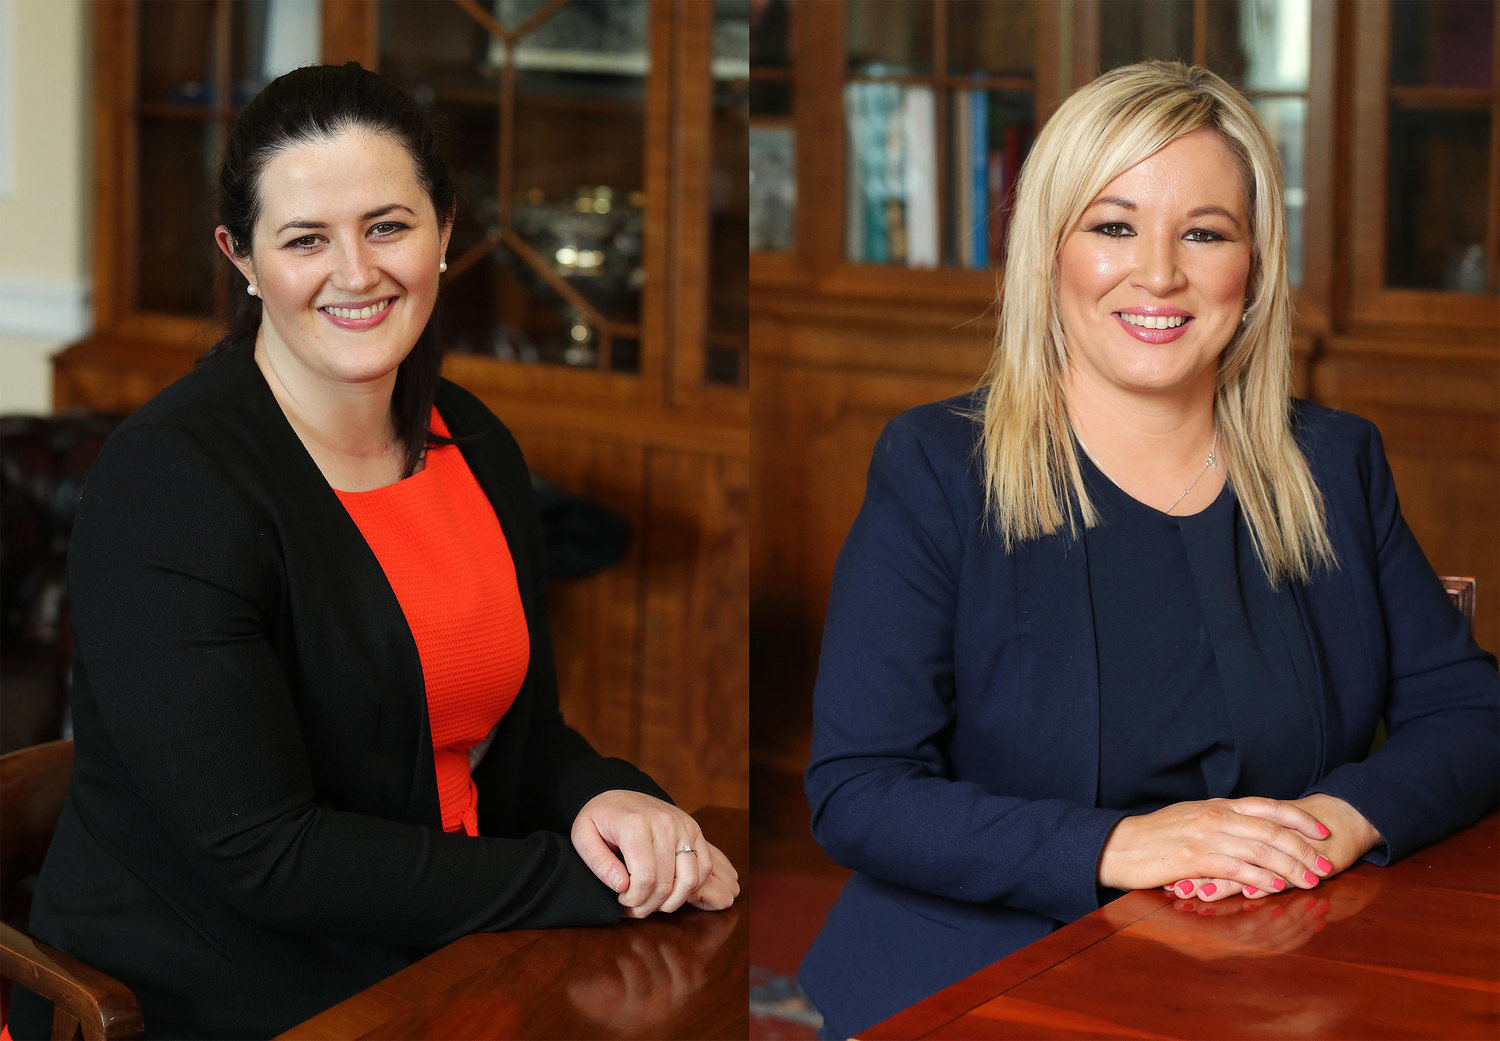 Left to right, Justice Minister Claire Sugden and Health Minister Michelle O'Neill